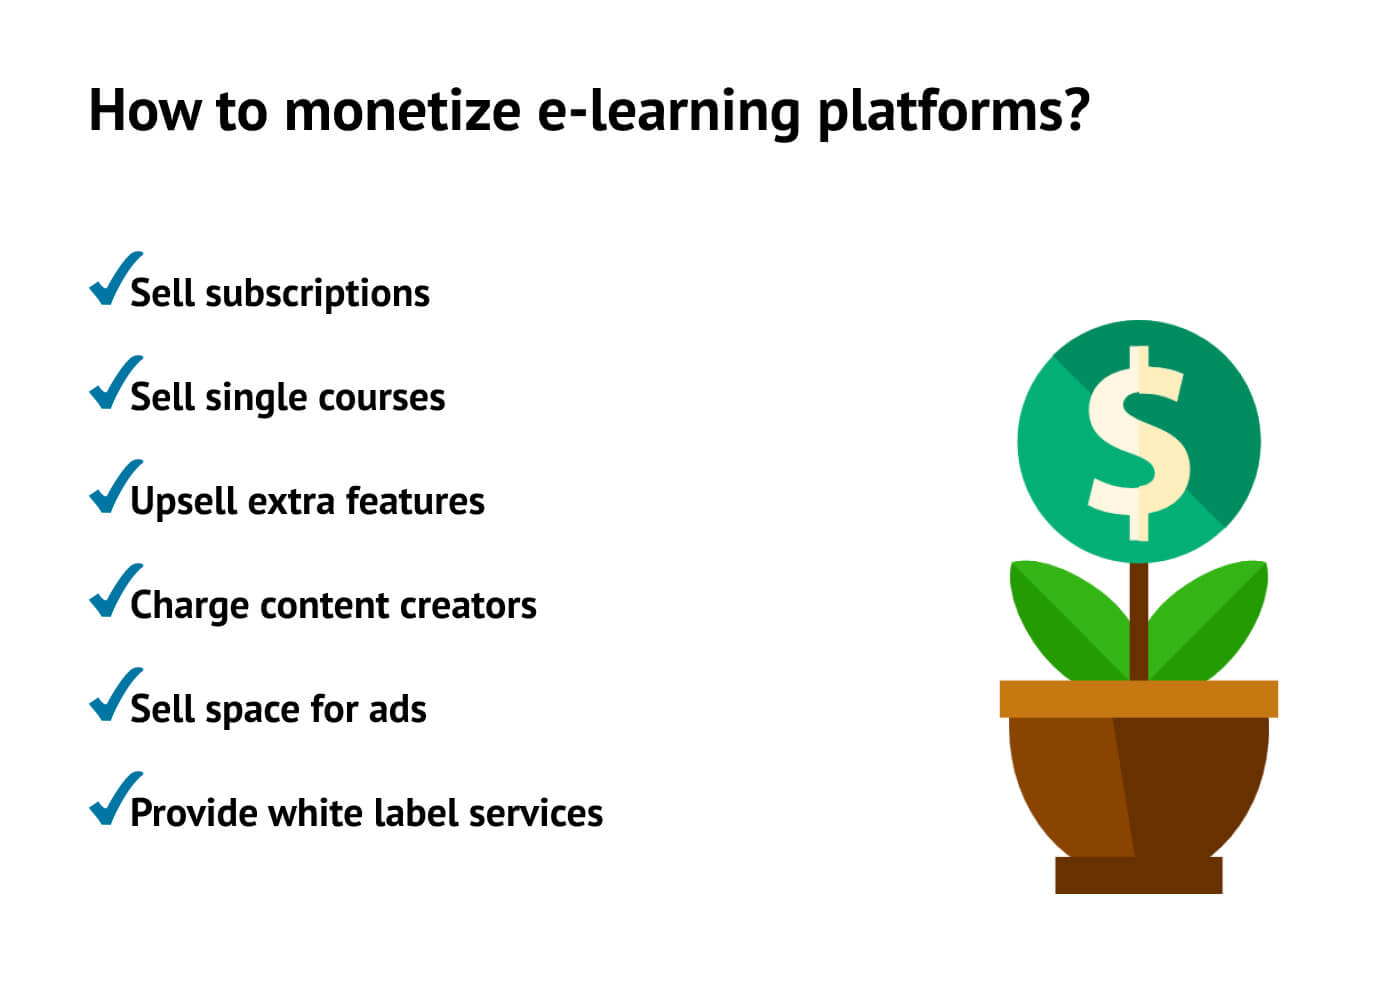 Monetization methods for e-learning apps